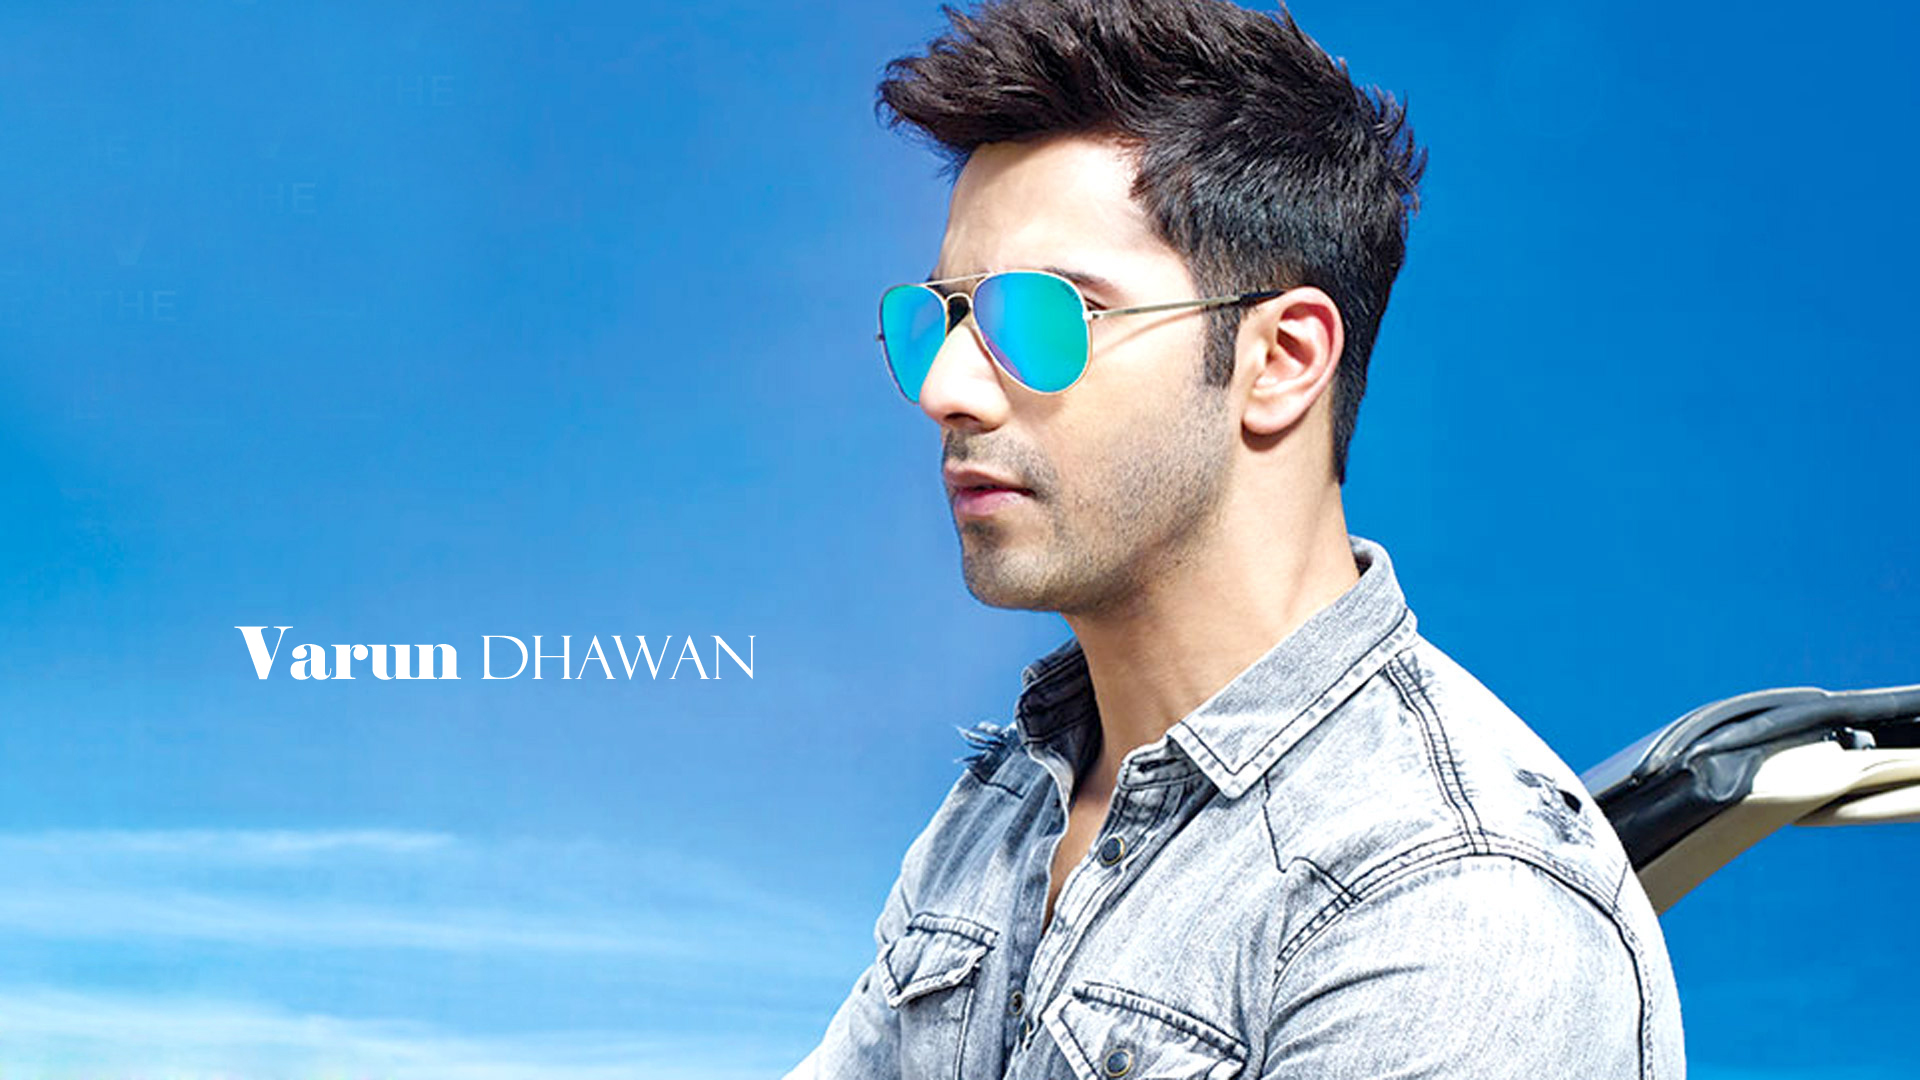 Varun Dhawan New Wallpaper